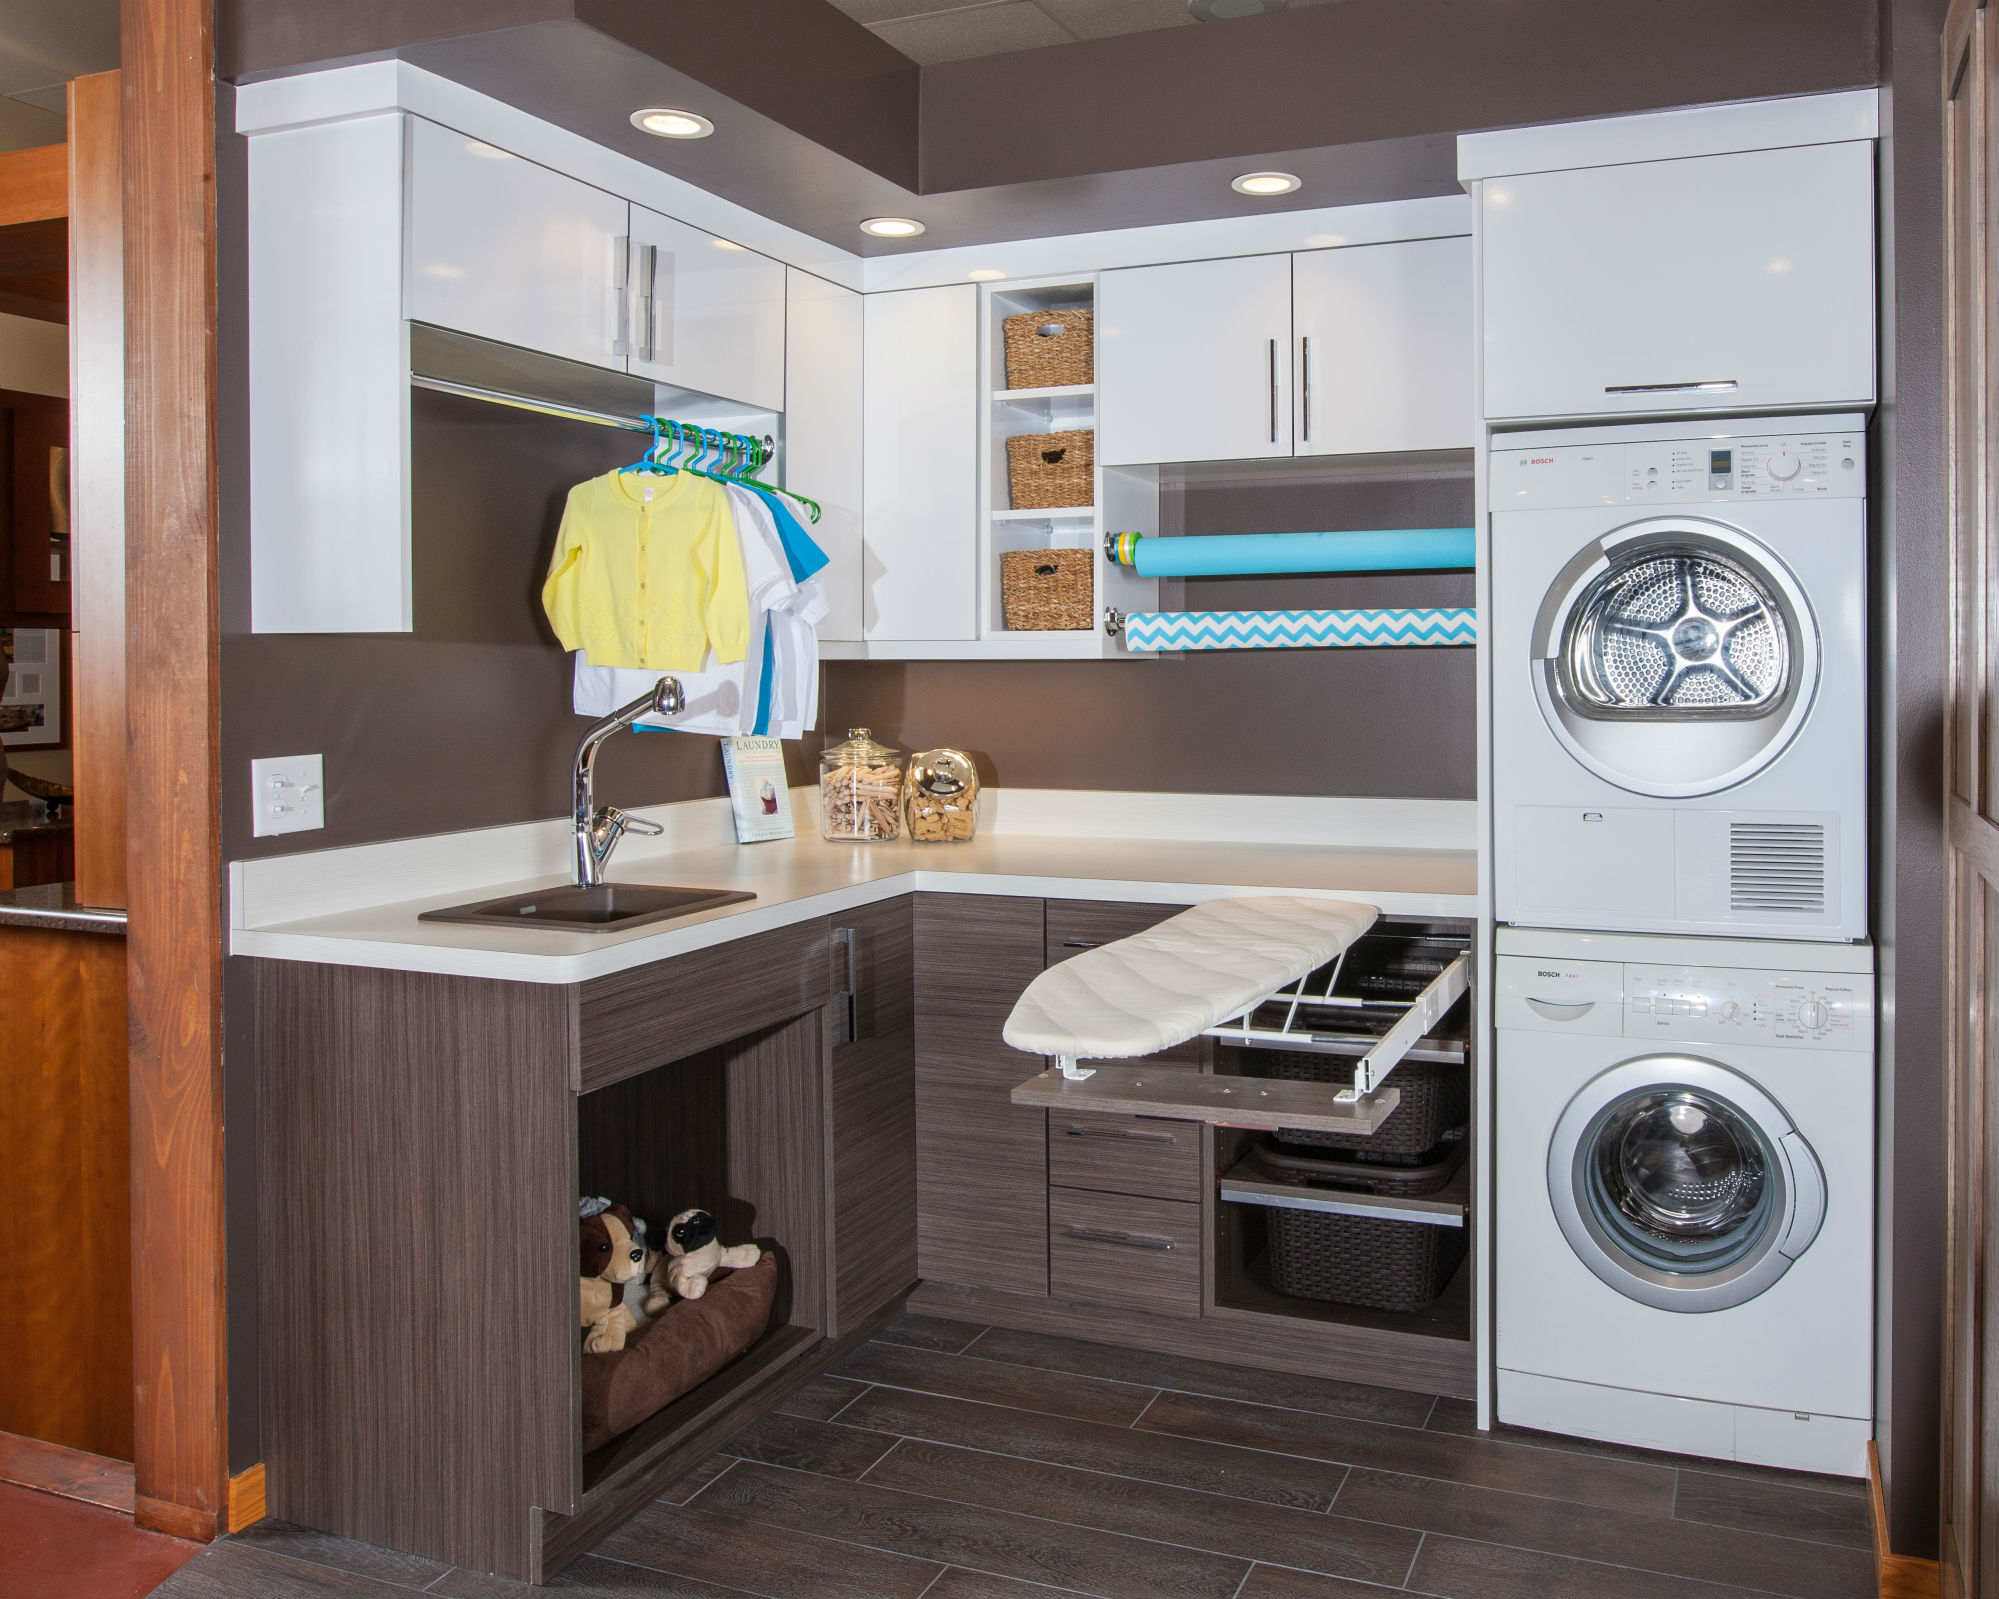 Crystal Kitchen And Bath Laundry Room Display